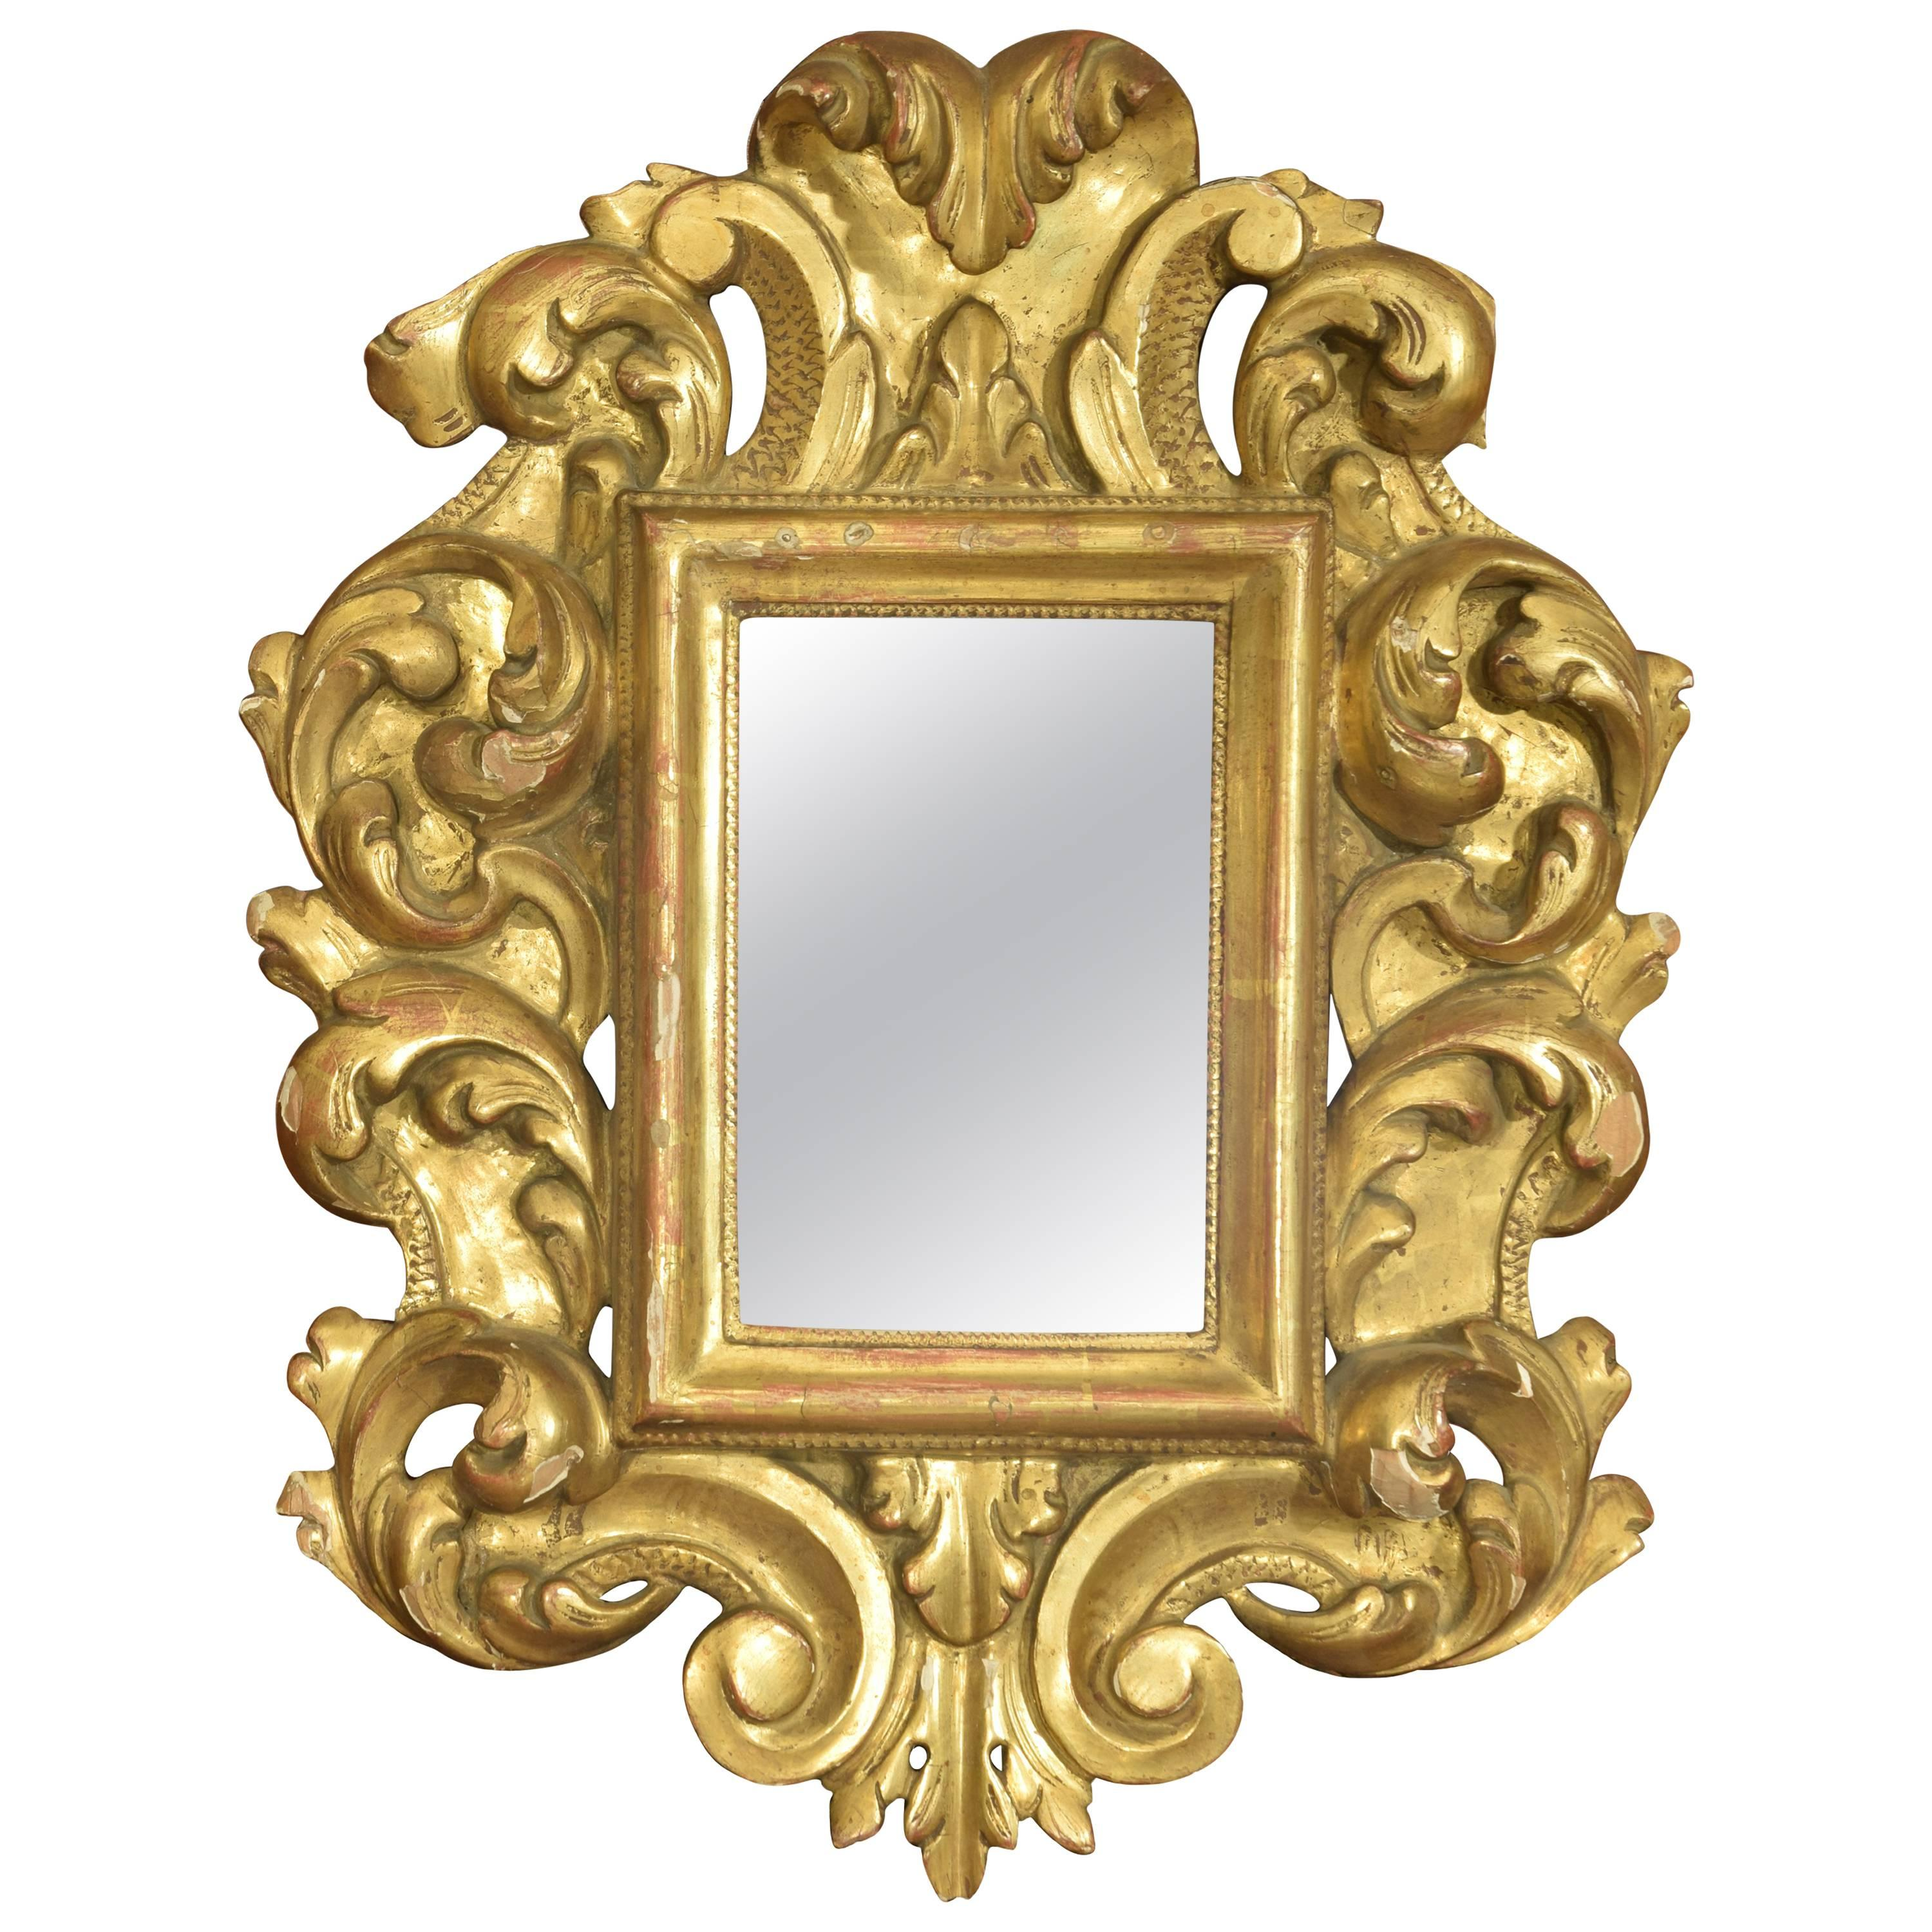 Art Nouveau Mirror in Marble Powder For Sale at 1stdibs